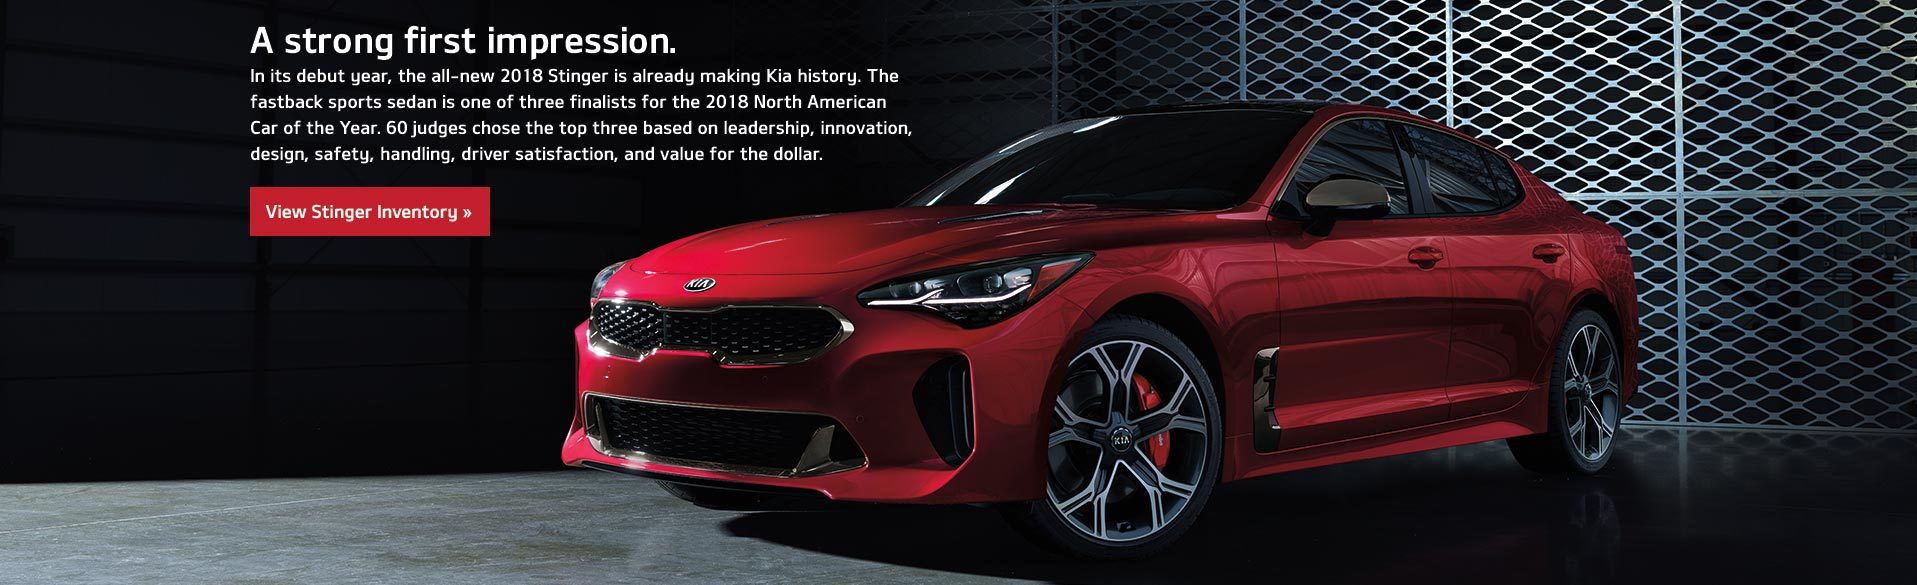 Kia Stinger - A strong first impression.